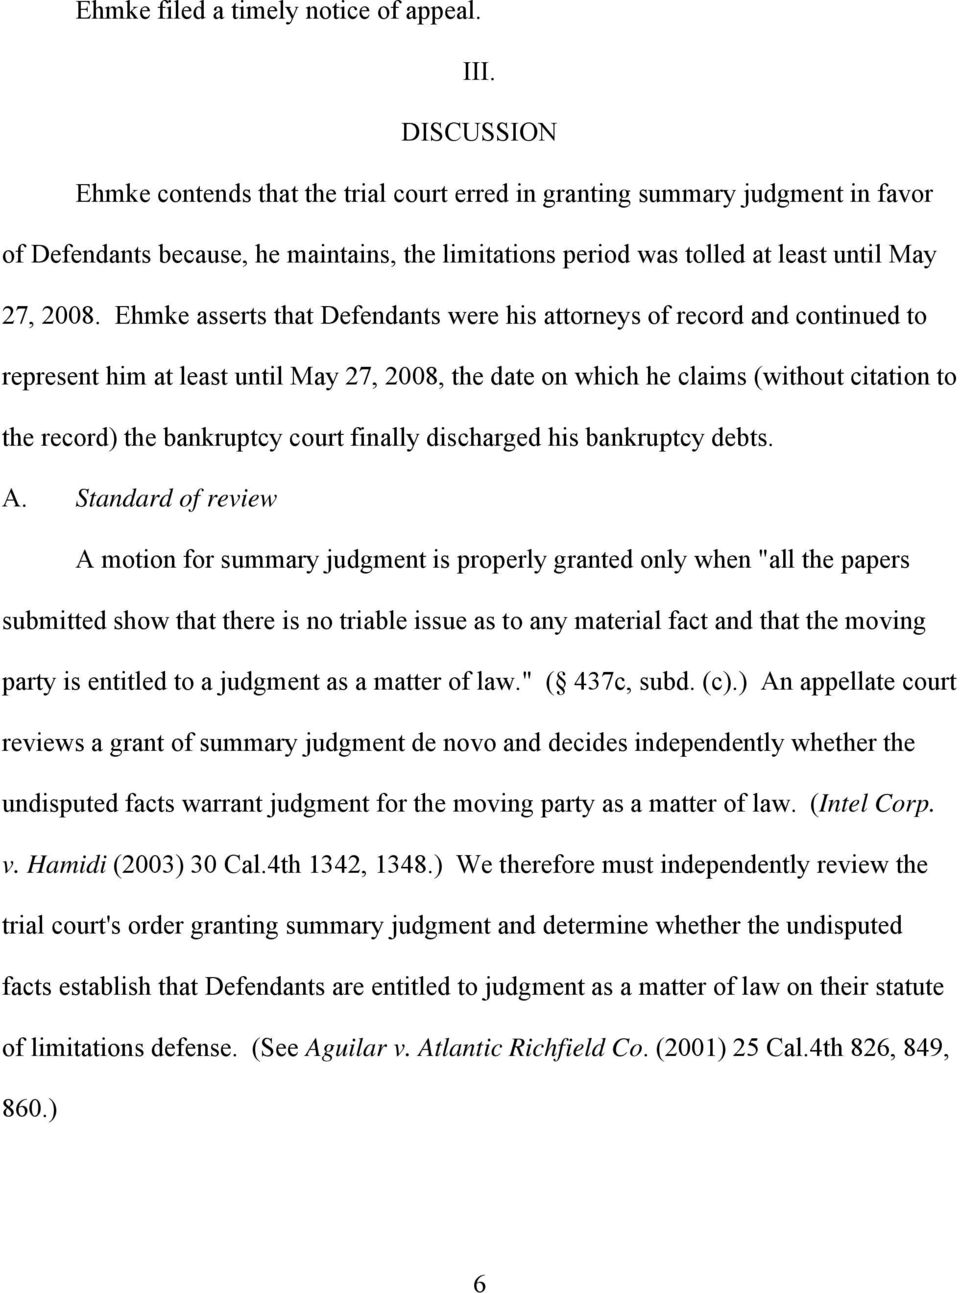 Ehmke asserts that Defendants were his attorneys of record and continued to represent him at least until May 27, 2008, the date on which he claims (without citation to the record) the bankruptcy